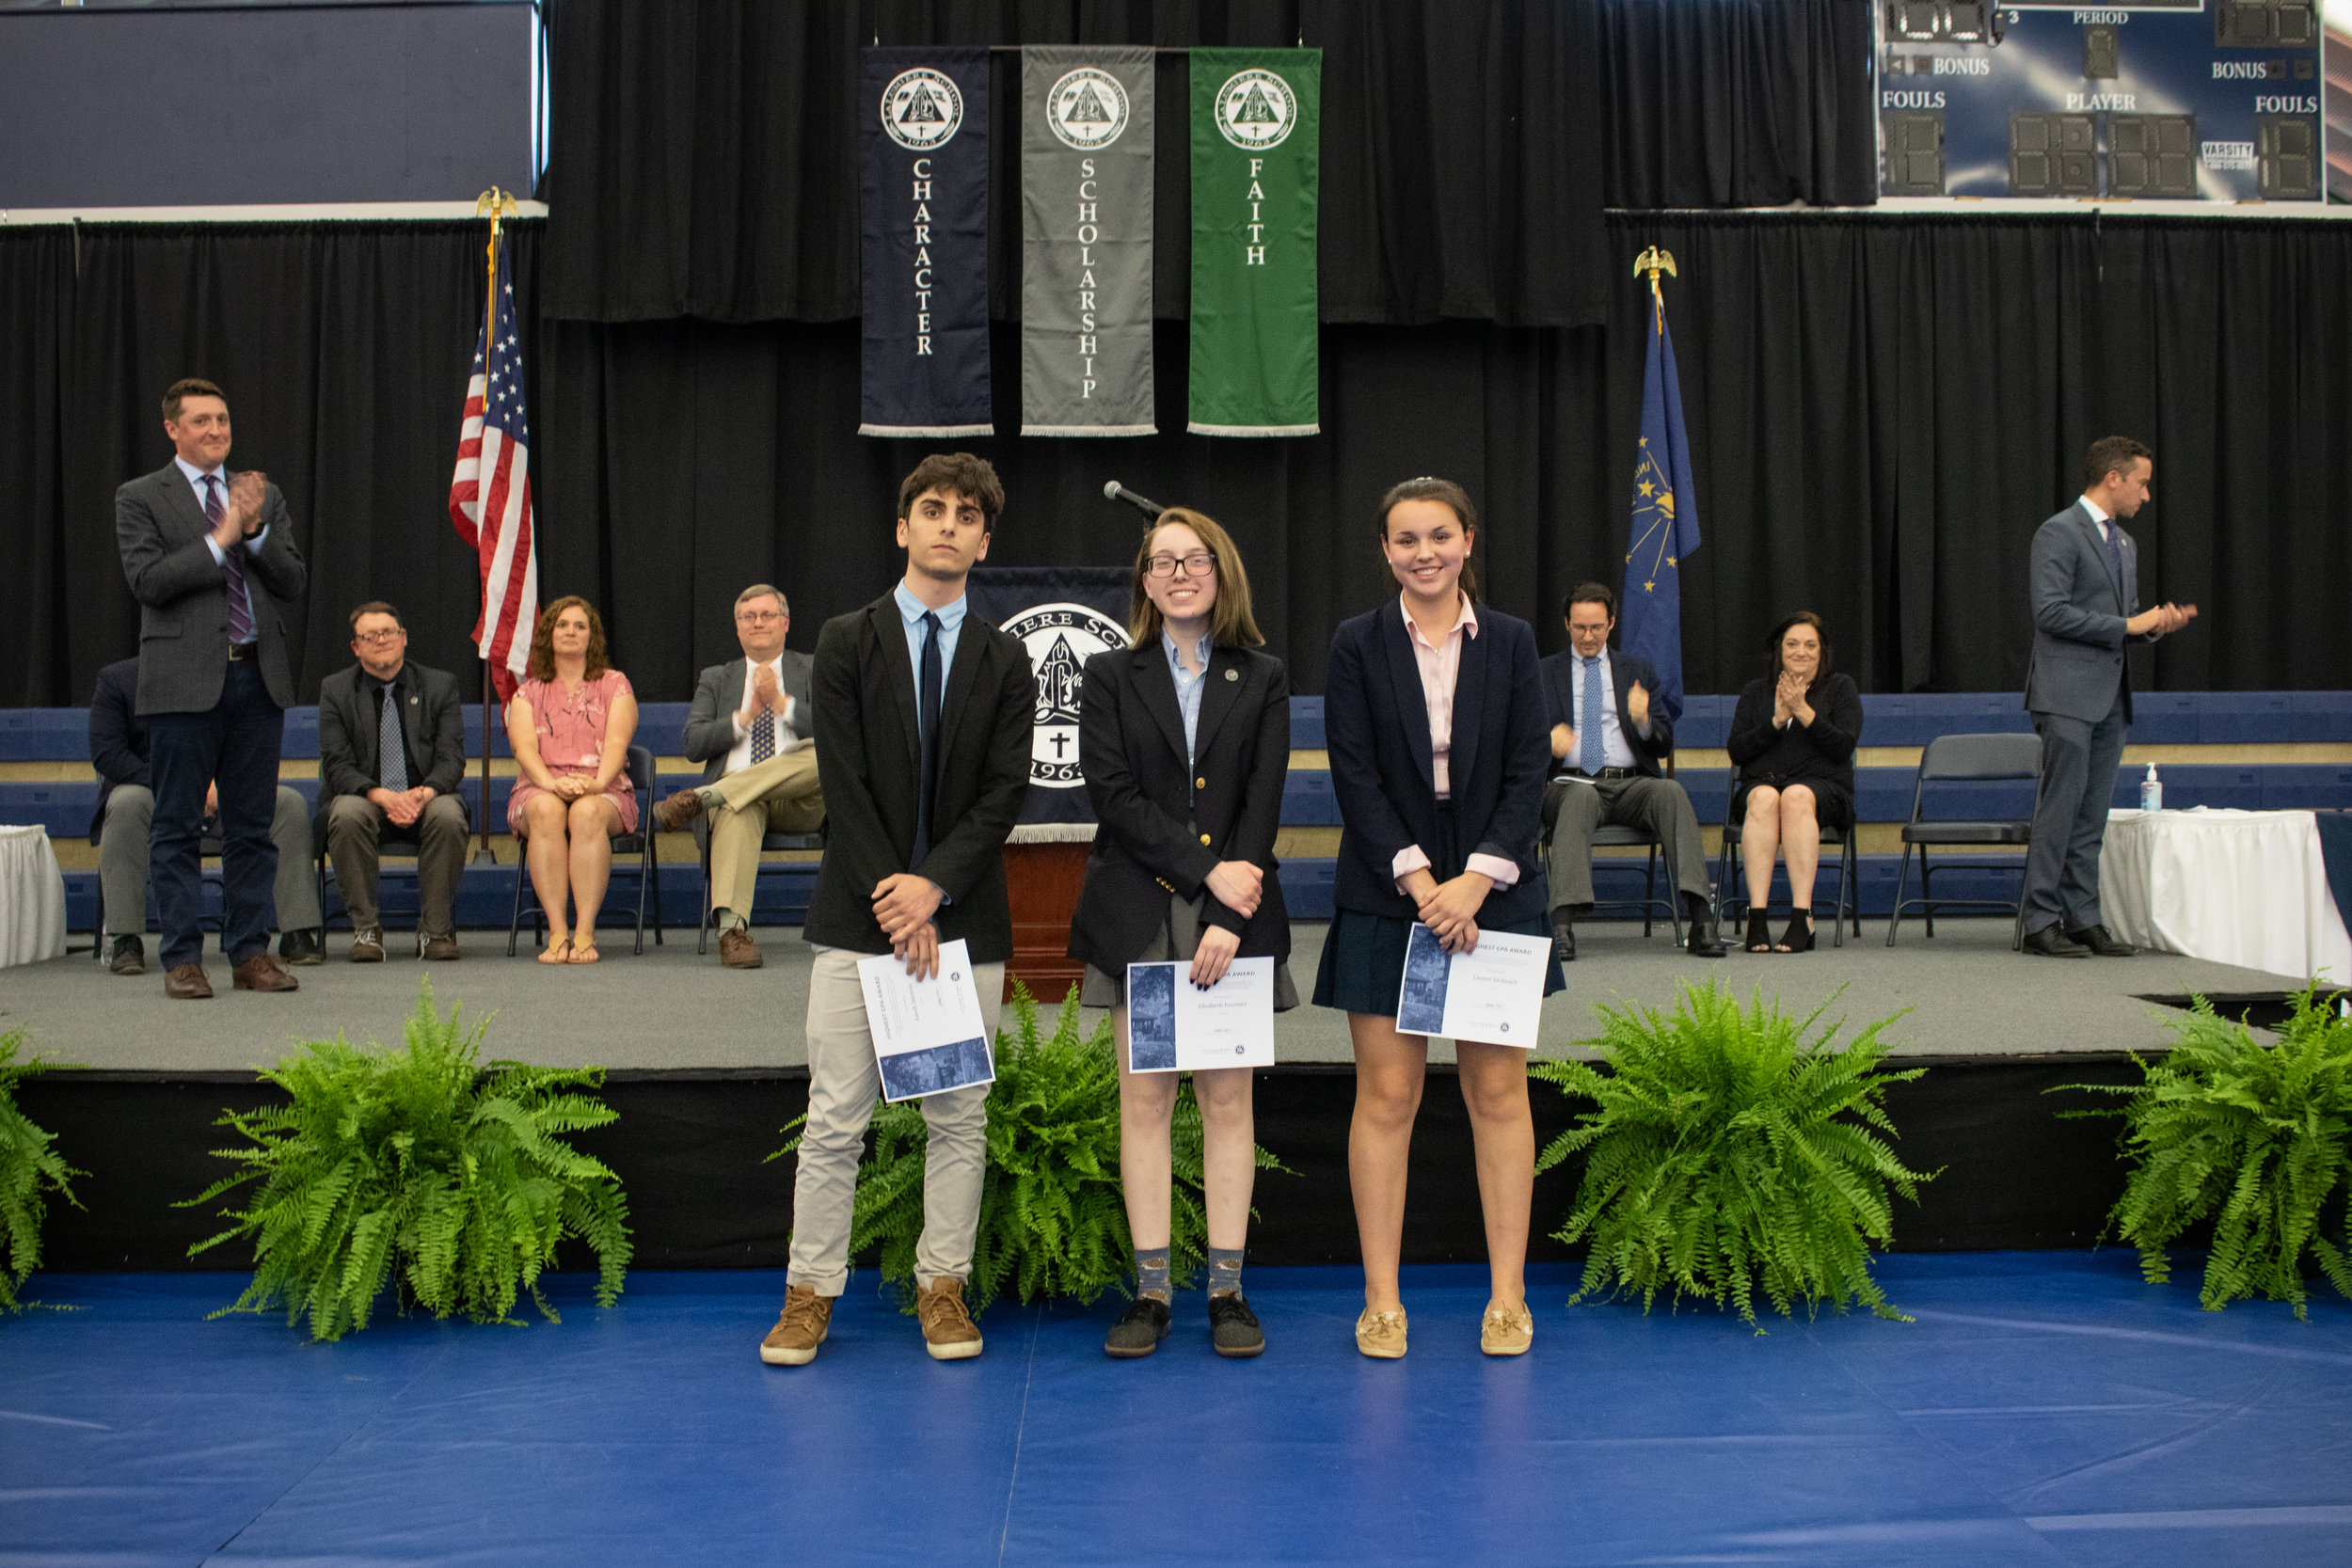 Students with the highest GPA in the third, fourth, and fifth forms